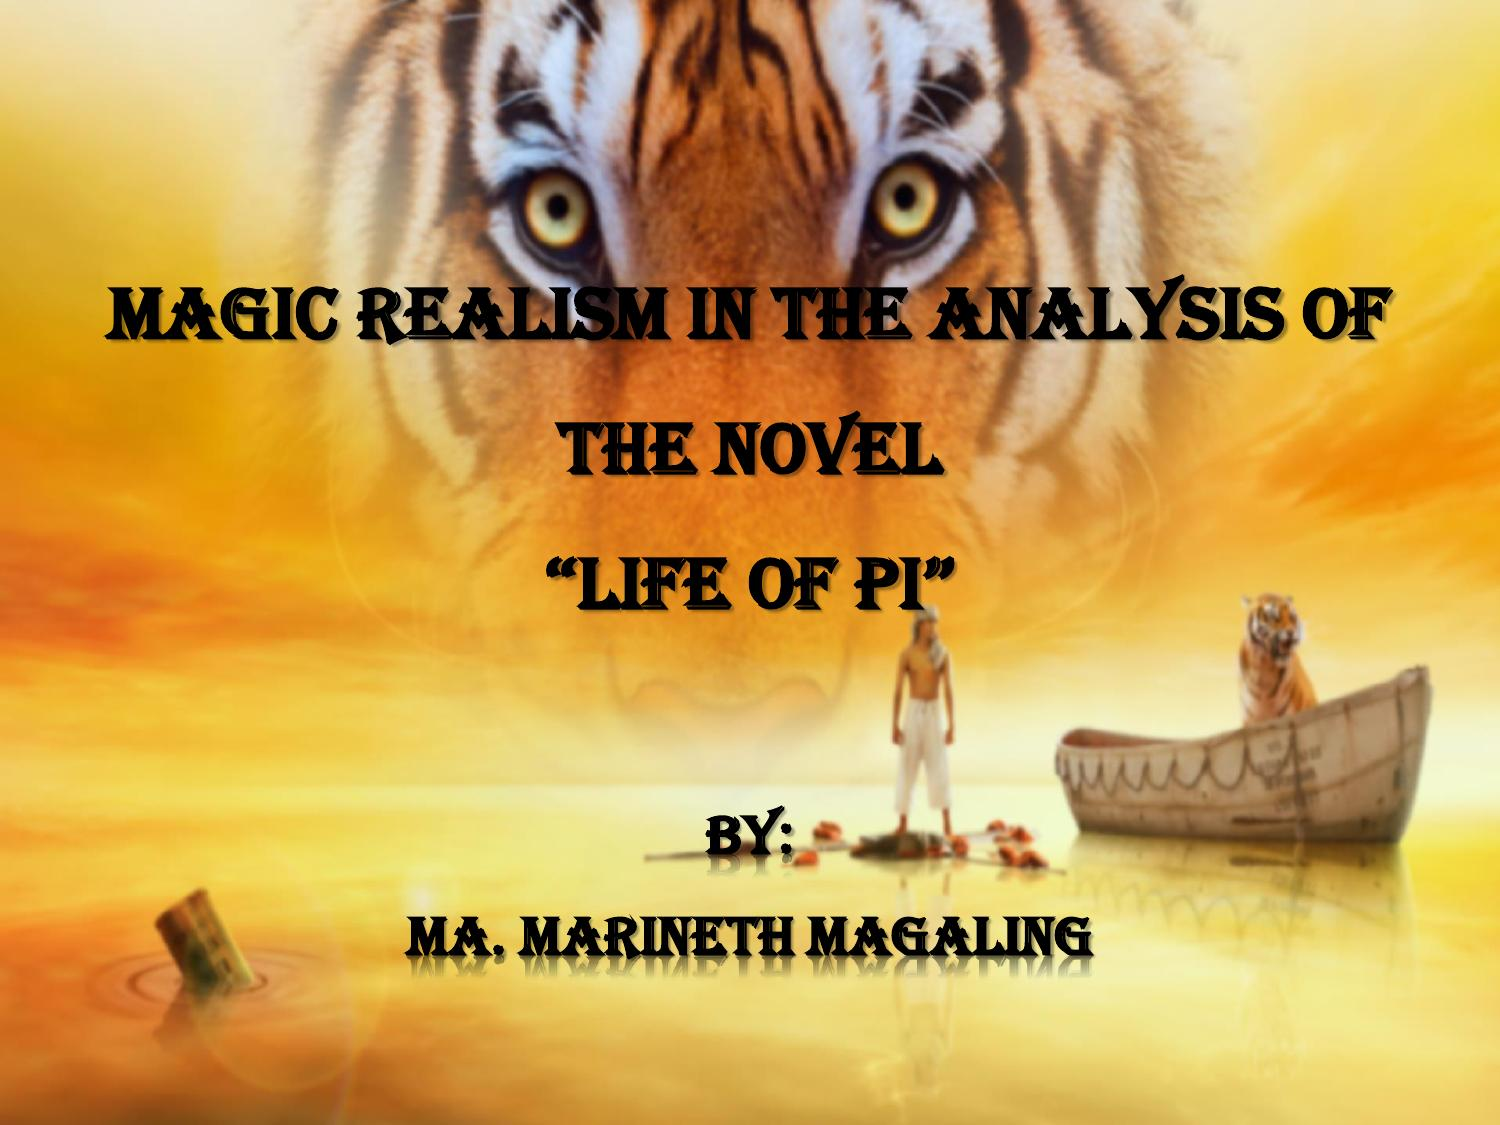 Magic realism in the analysis of the novel life of pi by for Life of pi character analysis